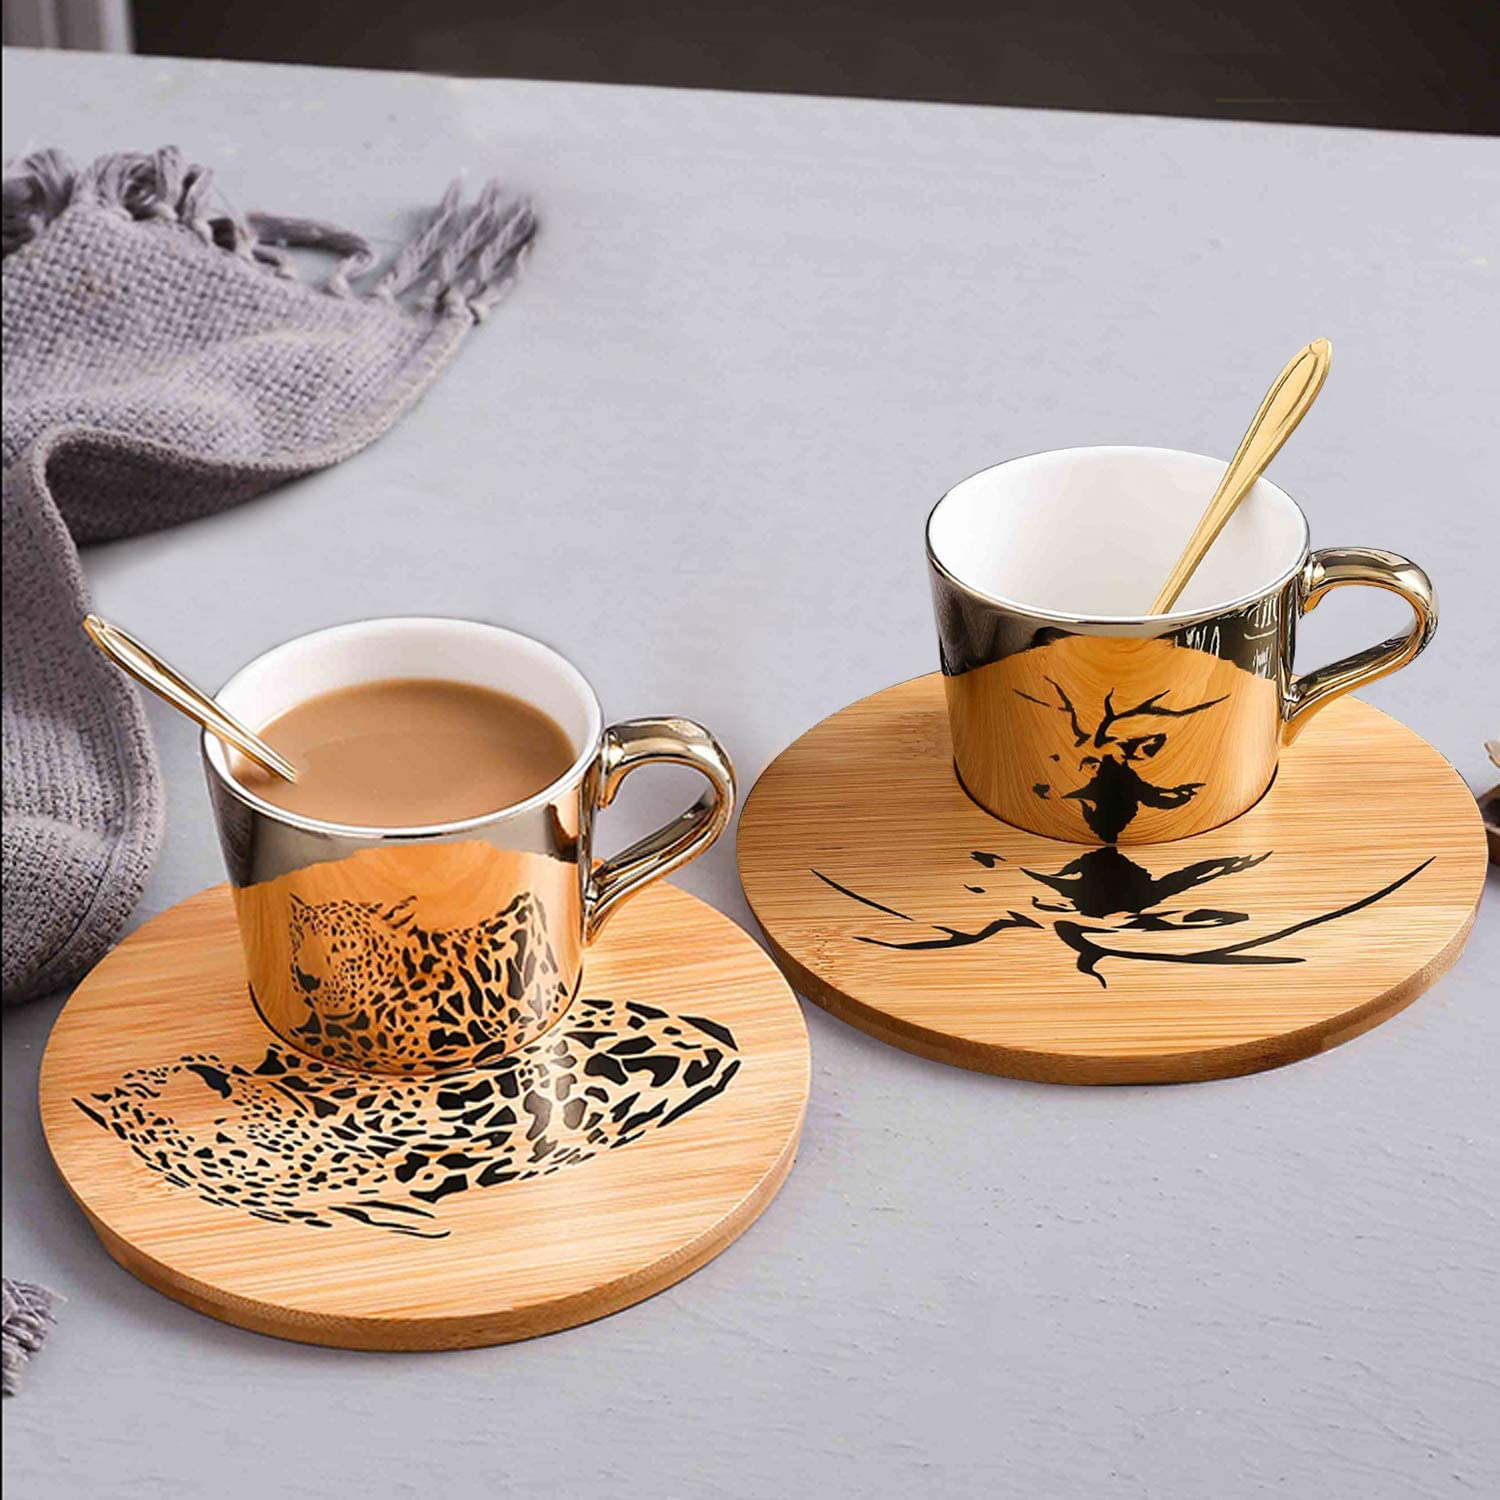 Mirror Cup and Saucer Set Cappuccino Cups Set of 2 Ceramic Gold Animal Espresso Cups with Saucers and Spoons 8 Ounce Tea Coffee Cup with Wood Saucer, Set of 2, Golden Best Gift